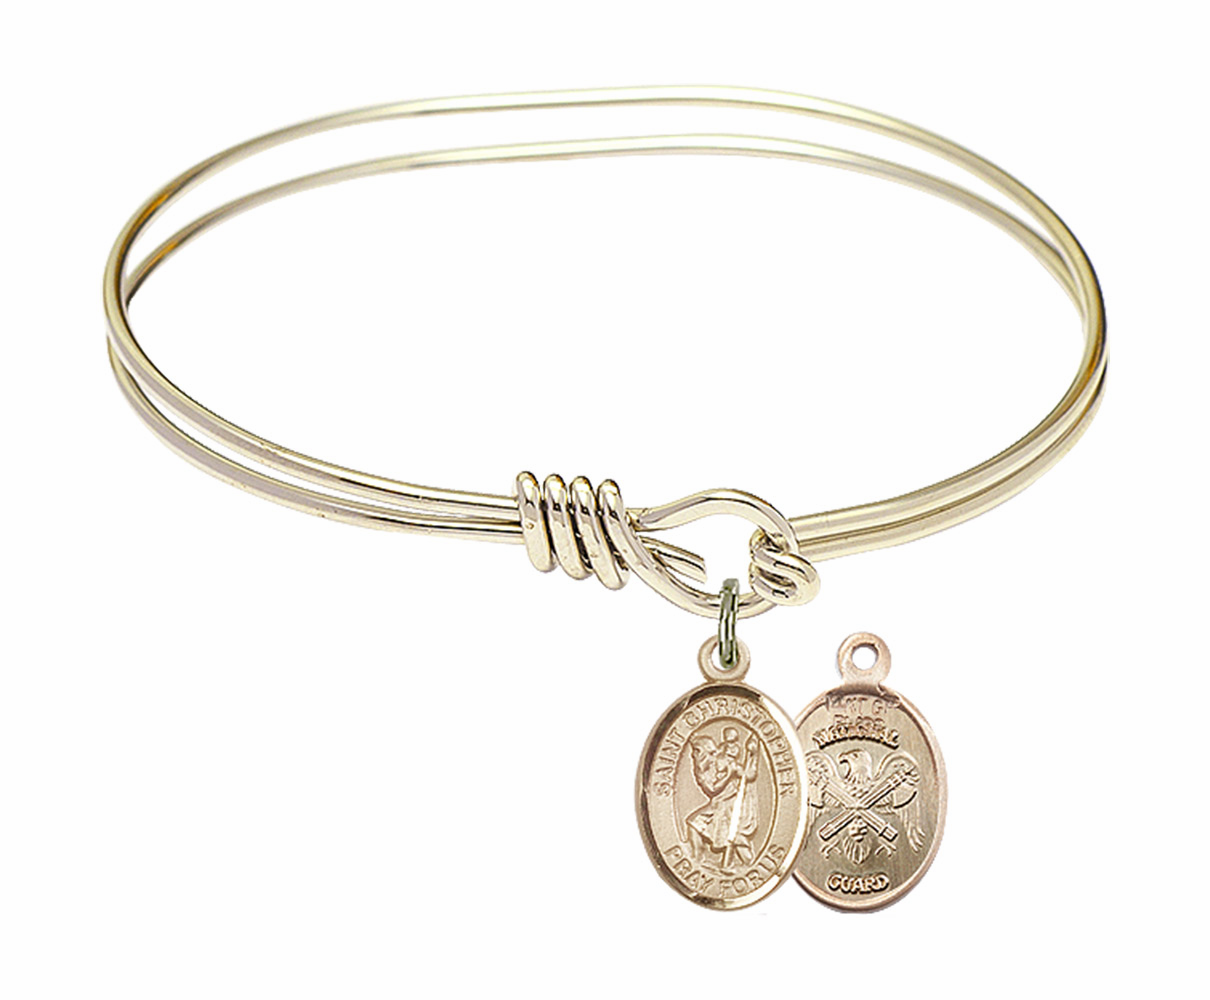 Twisted Gold-filled St Christopher National Guard Bangle Charm Bracelet by Bliss